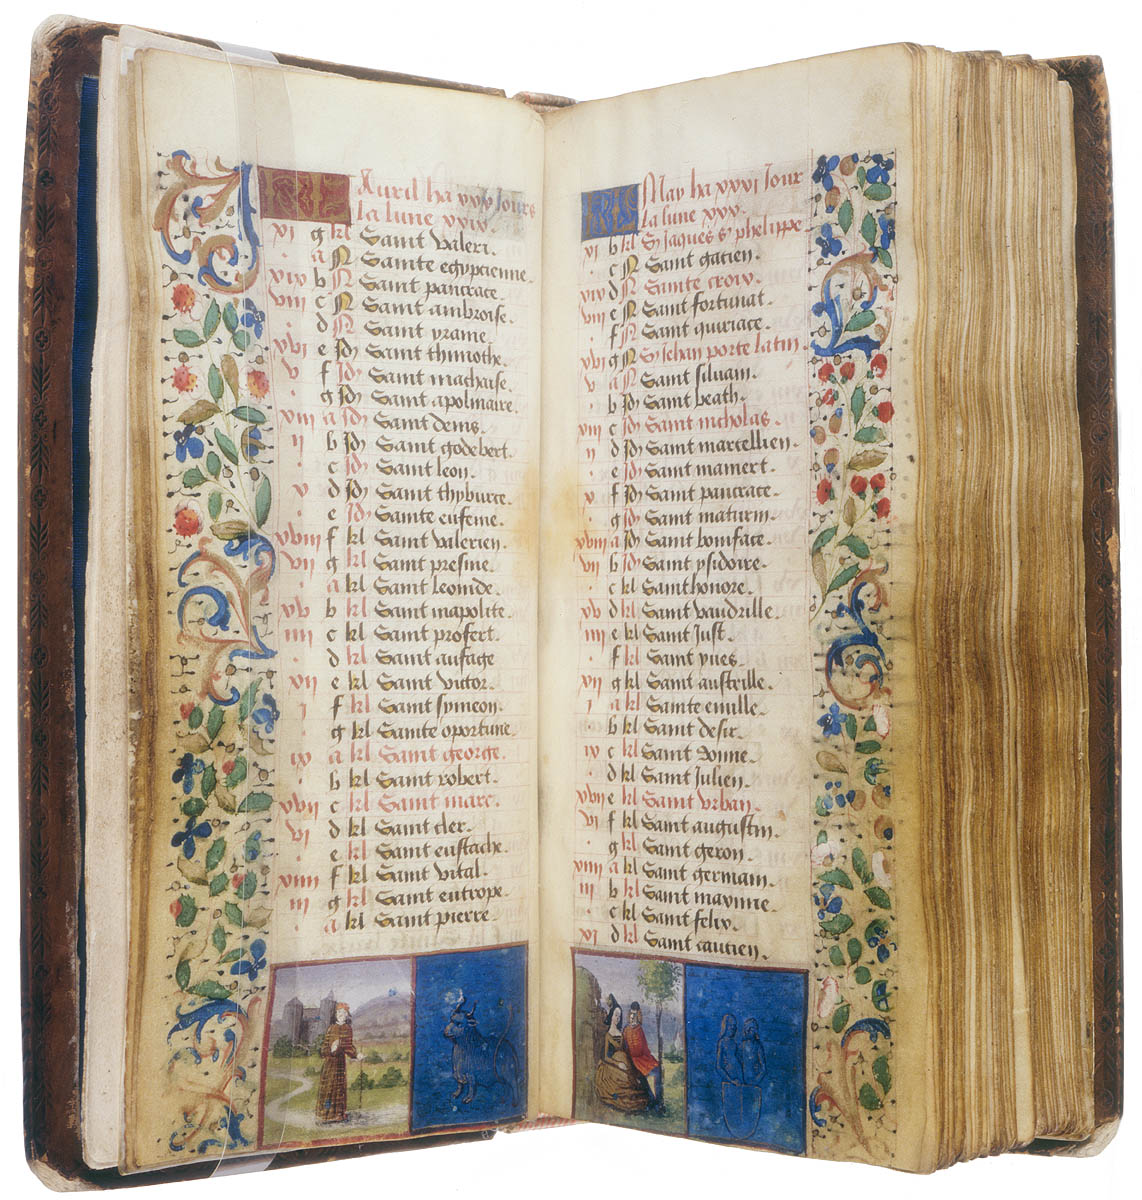 Pages of text from circa 1480 with artistic detail around page edges noting April-May and small painted pictures on the bottom of the pages